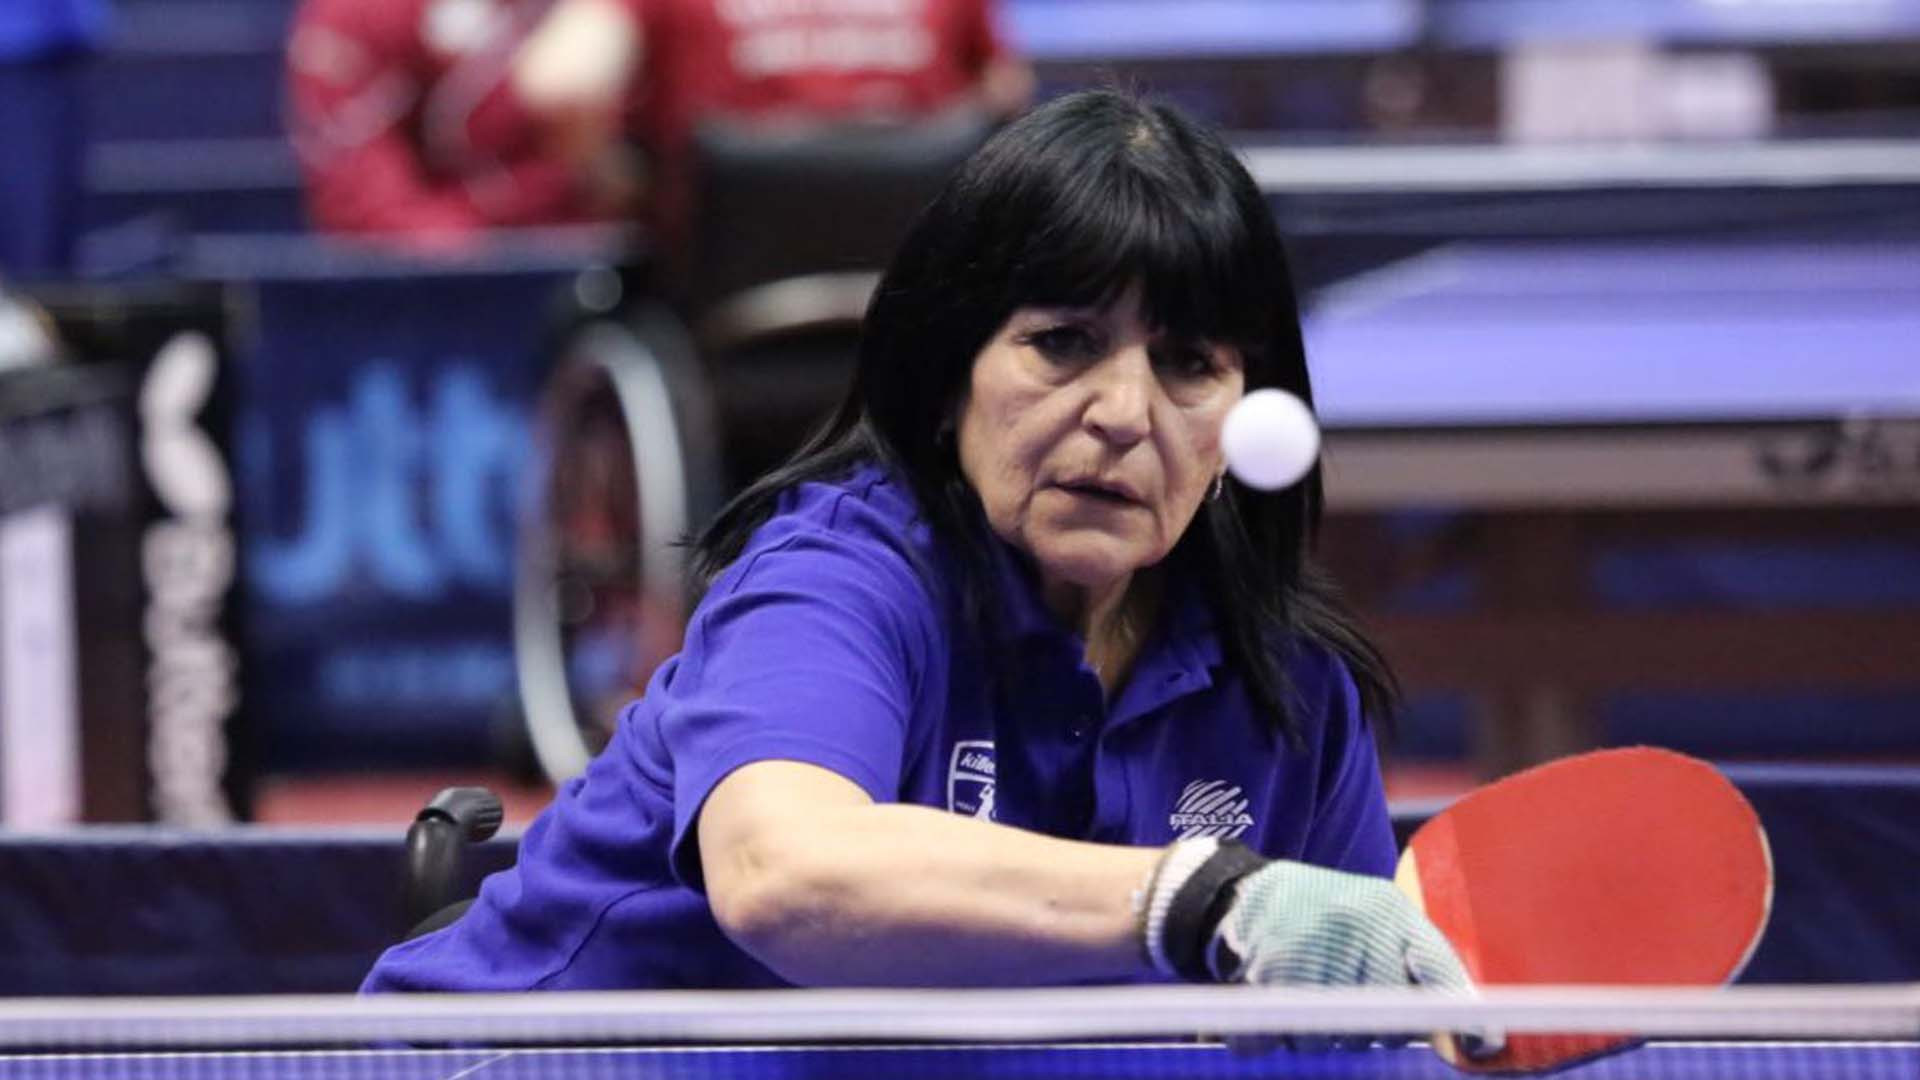 Italian Table Tennis Federation seeking umpires to officiate at 2018 Lignano Para Open